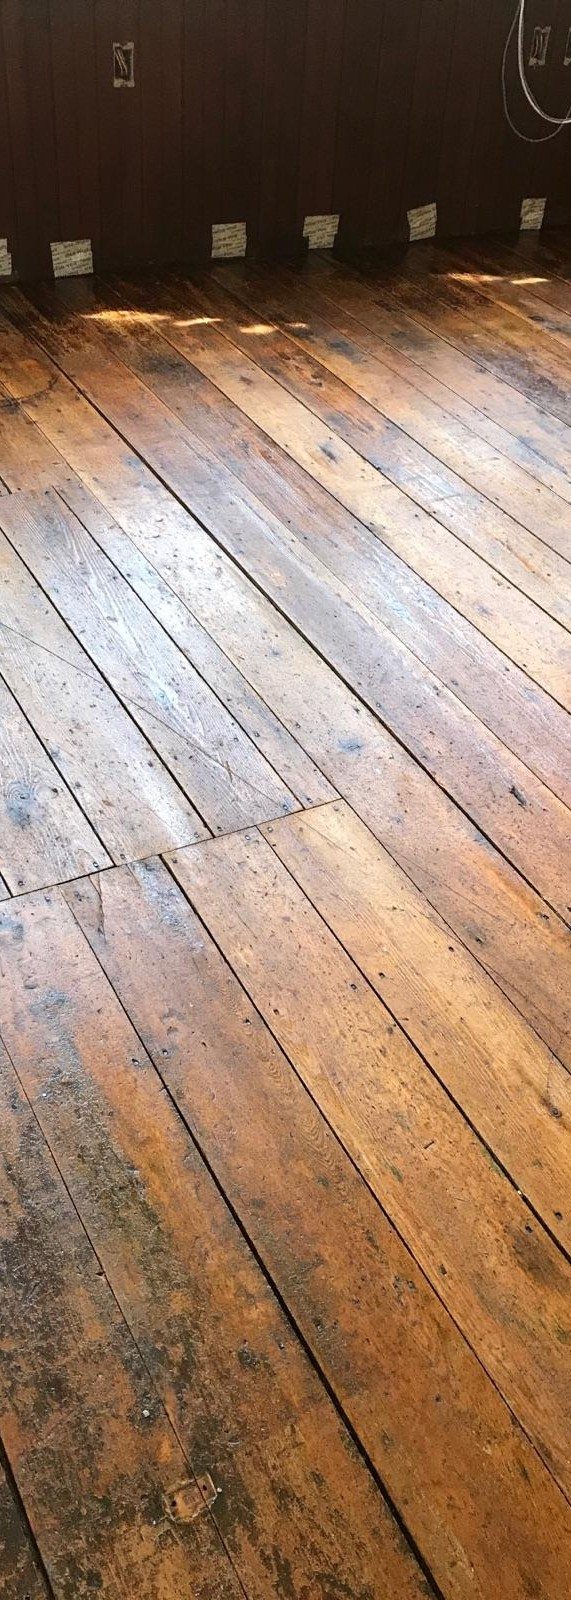 150 year old pine floors